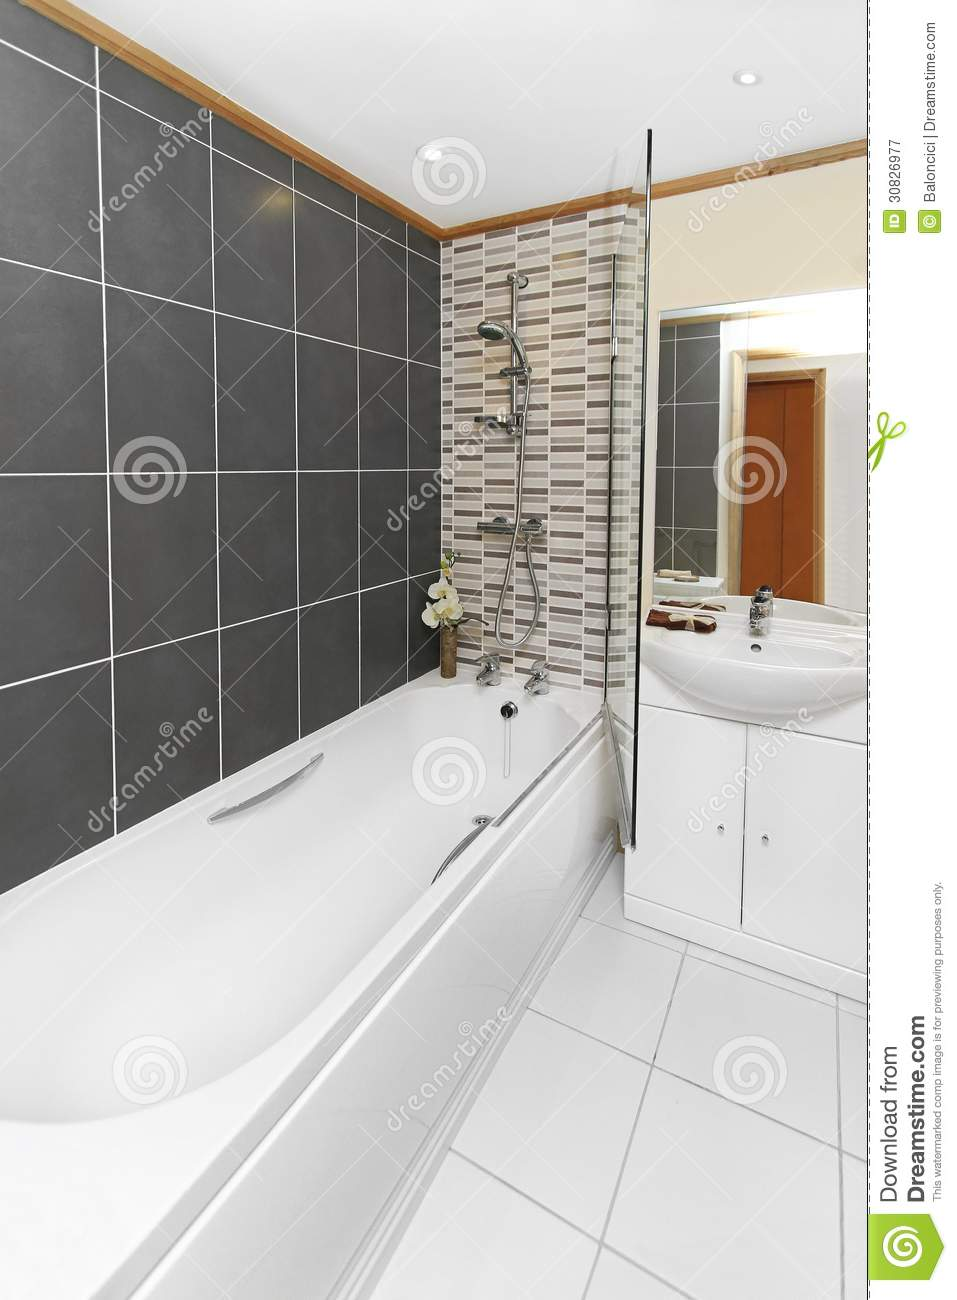 Bathroom Royalty Free Stock Photography Image 30826977